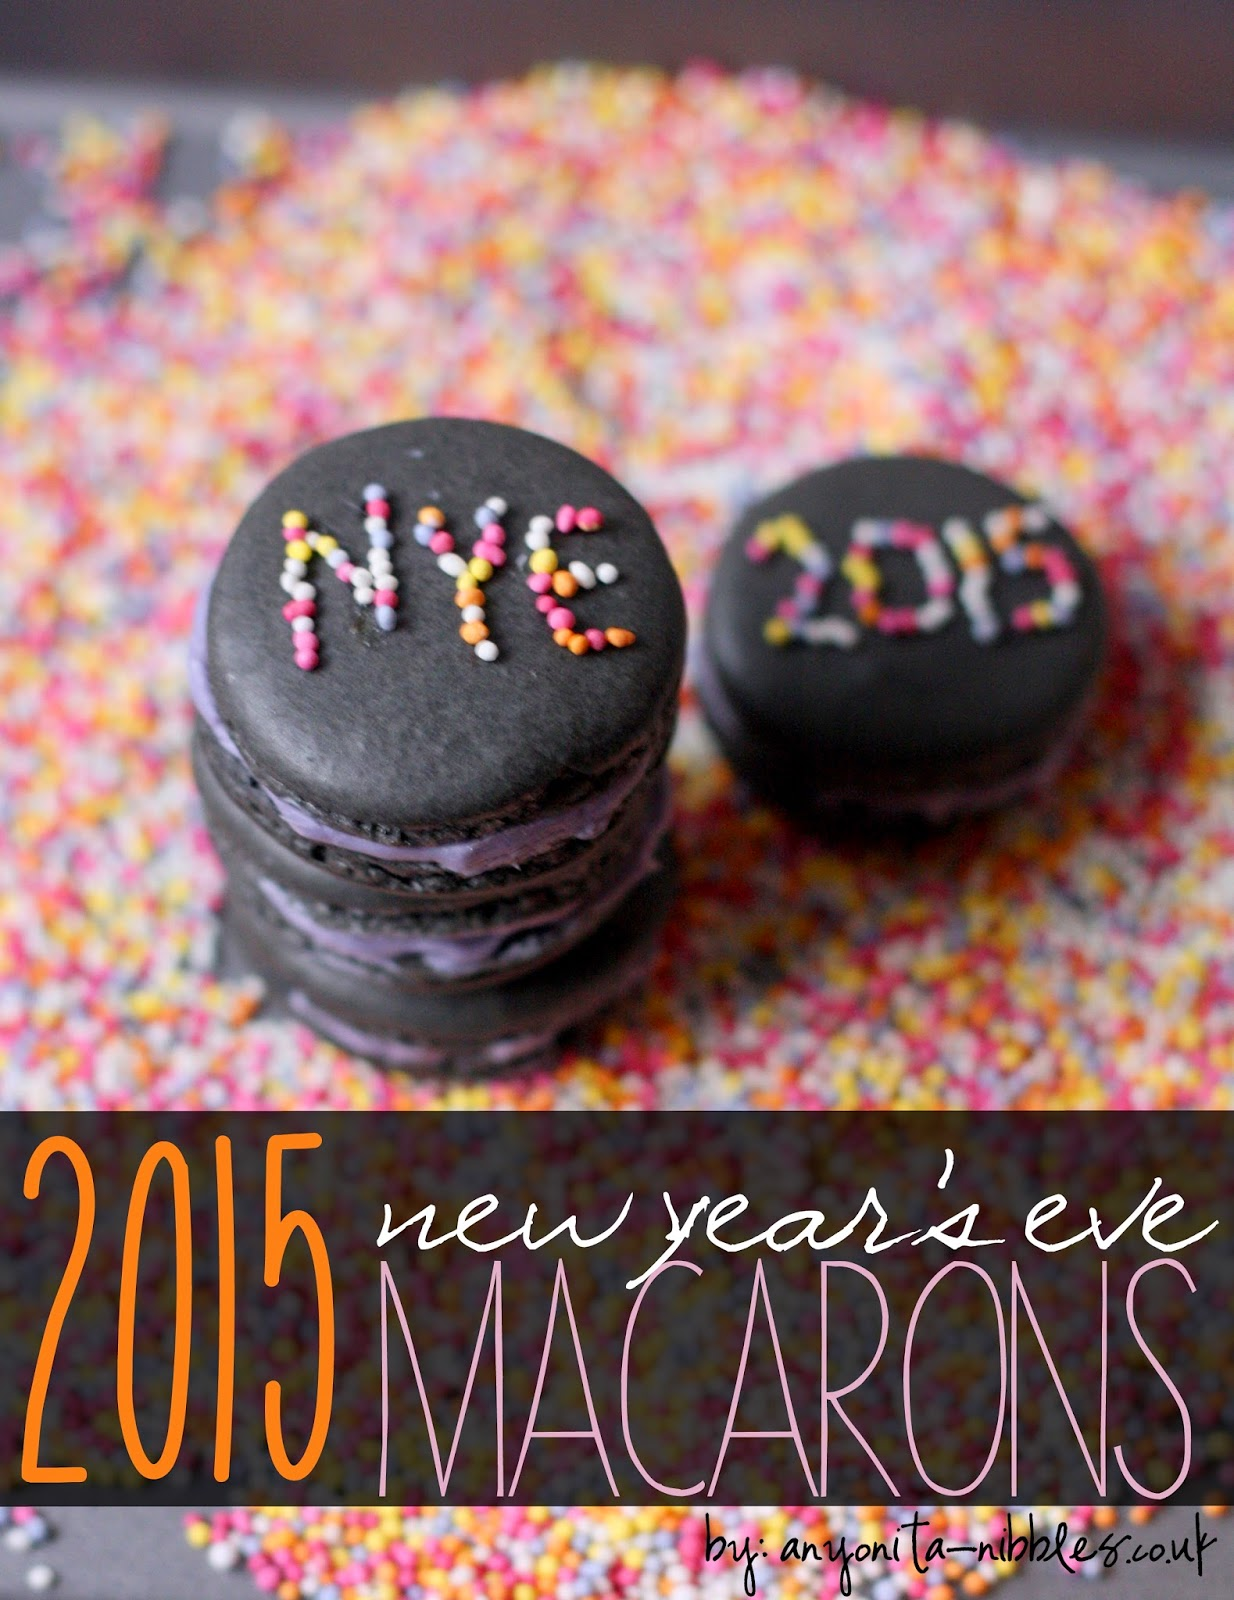 2015 New Year's Eve Macarons from Anyonita-nibbles.co.uk